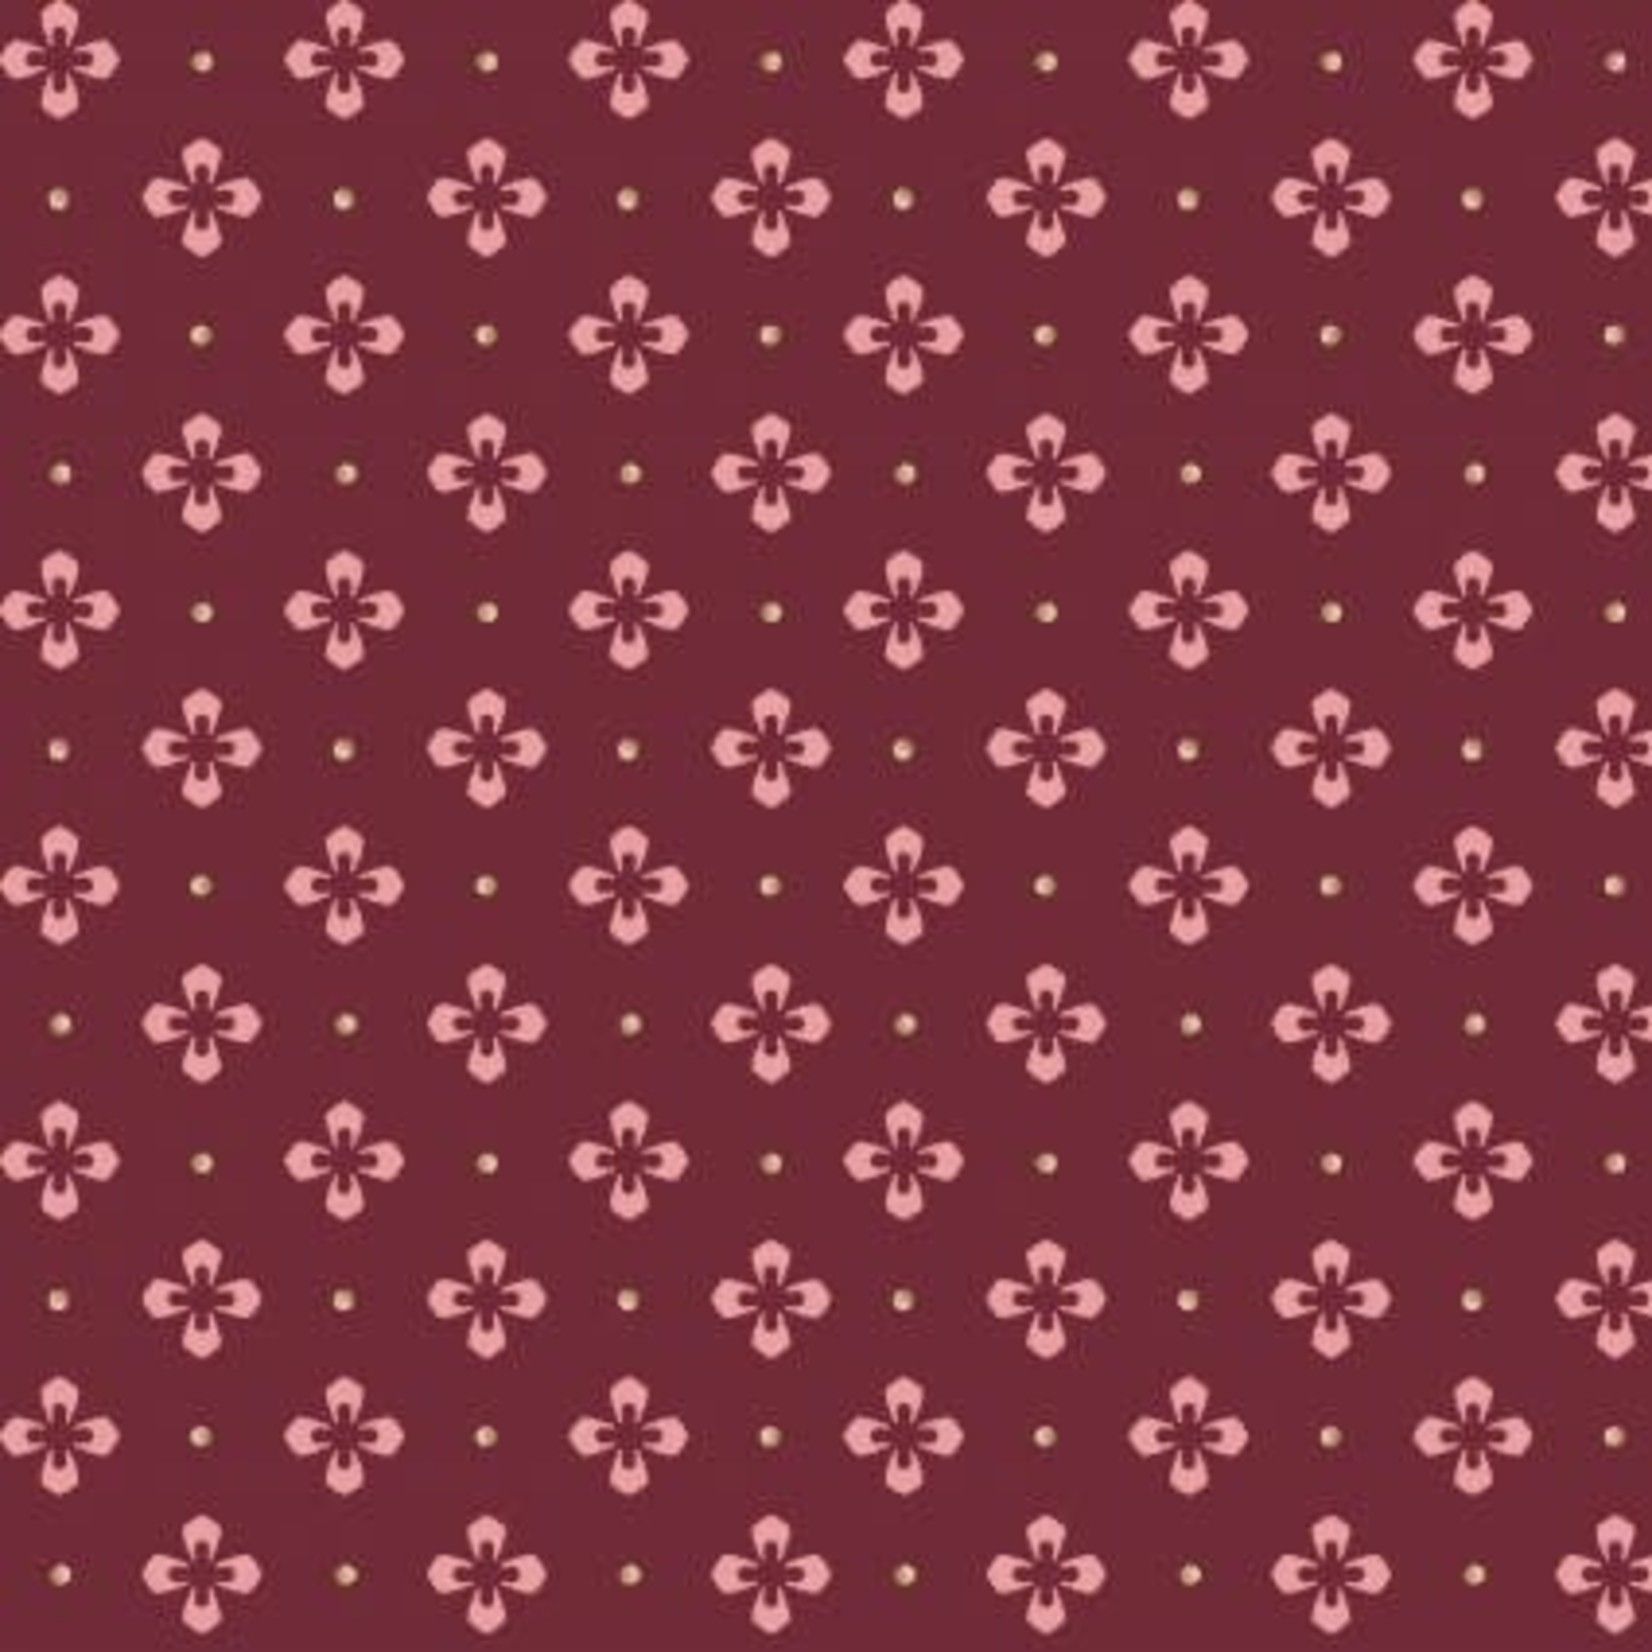 MAYWOOD BURGUNDY & BLUSH, MAS9366-M, Per cm or $18/m